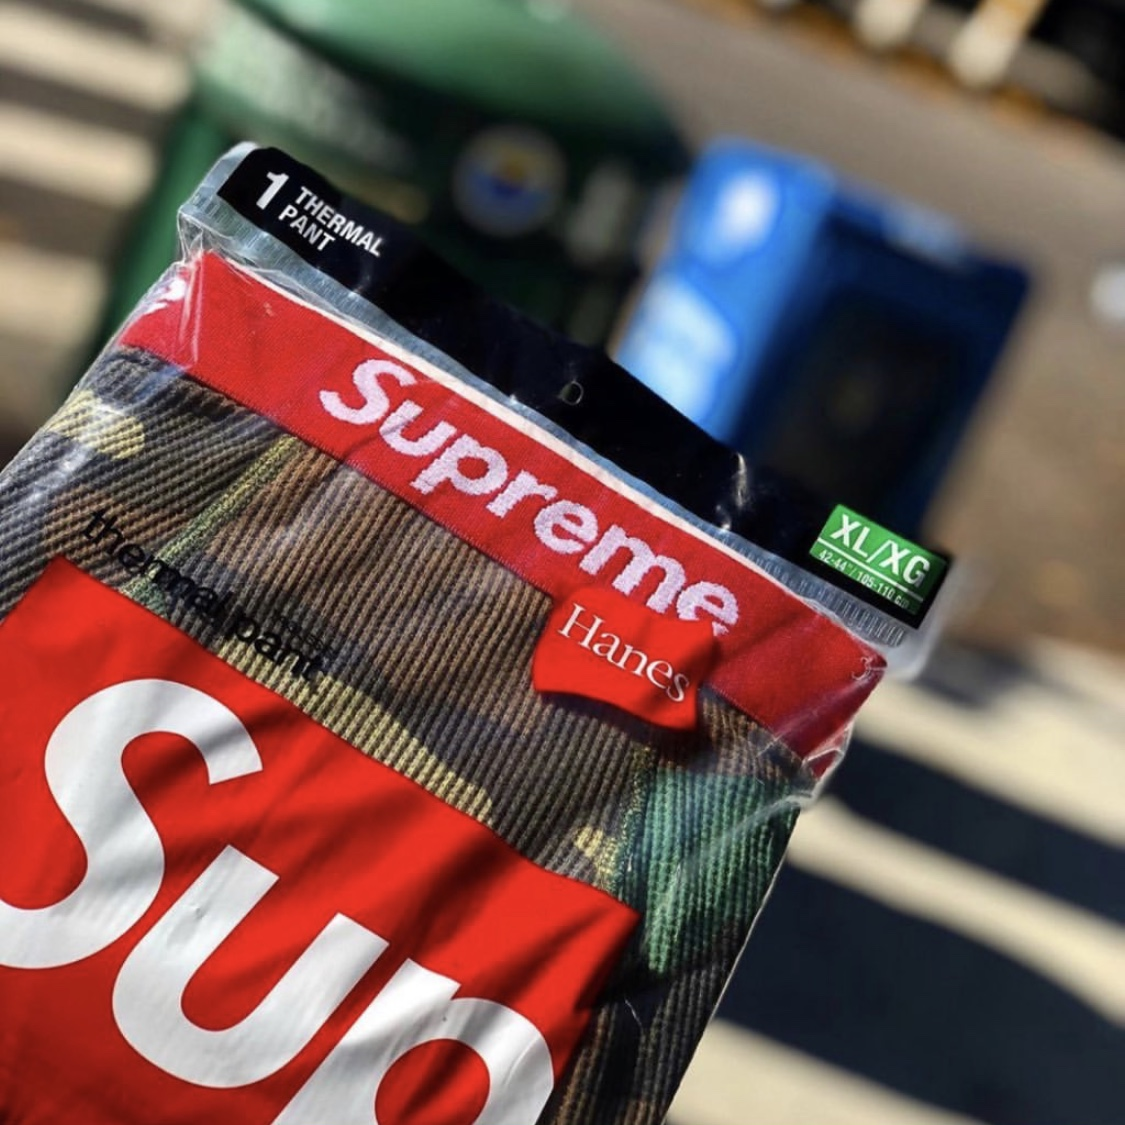 supreme-online-store-19aw-19fw-20191026-week9-release-items-snap